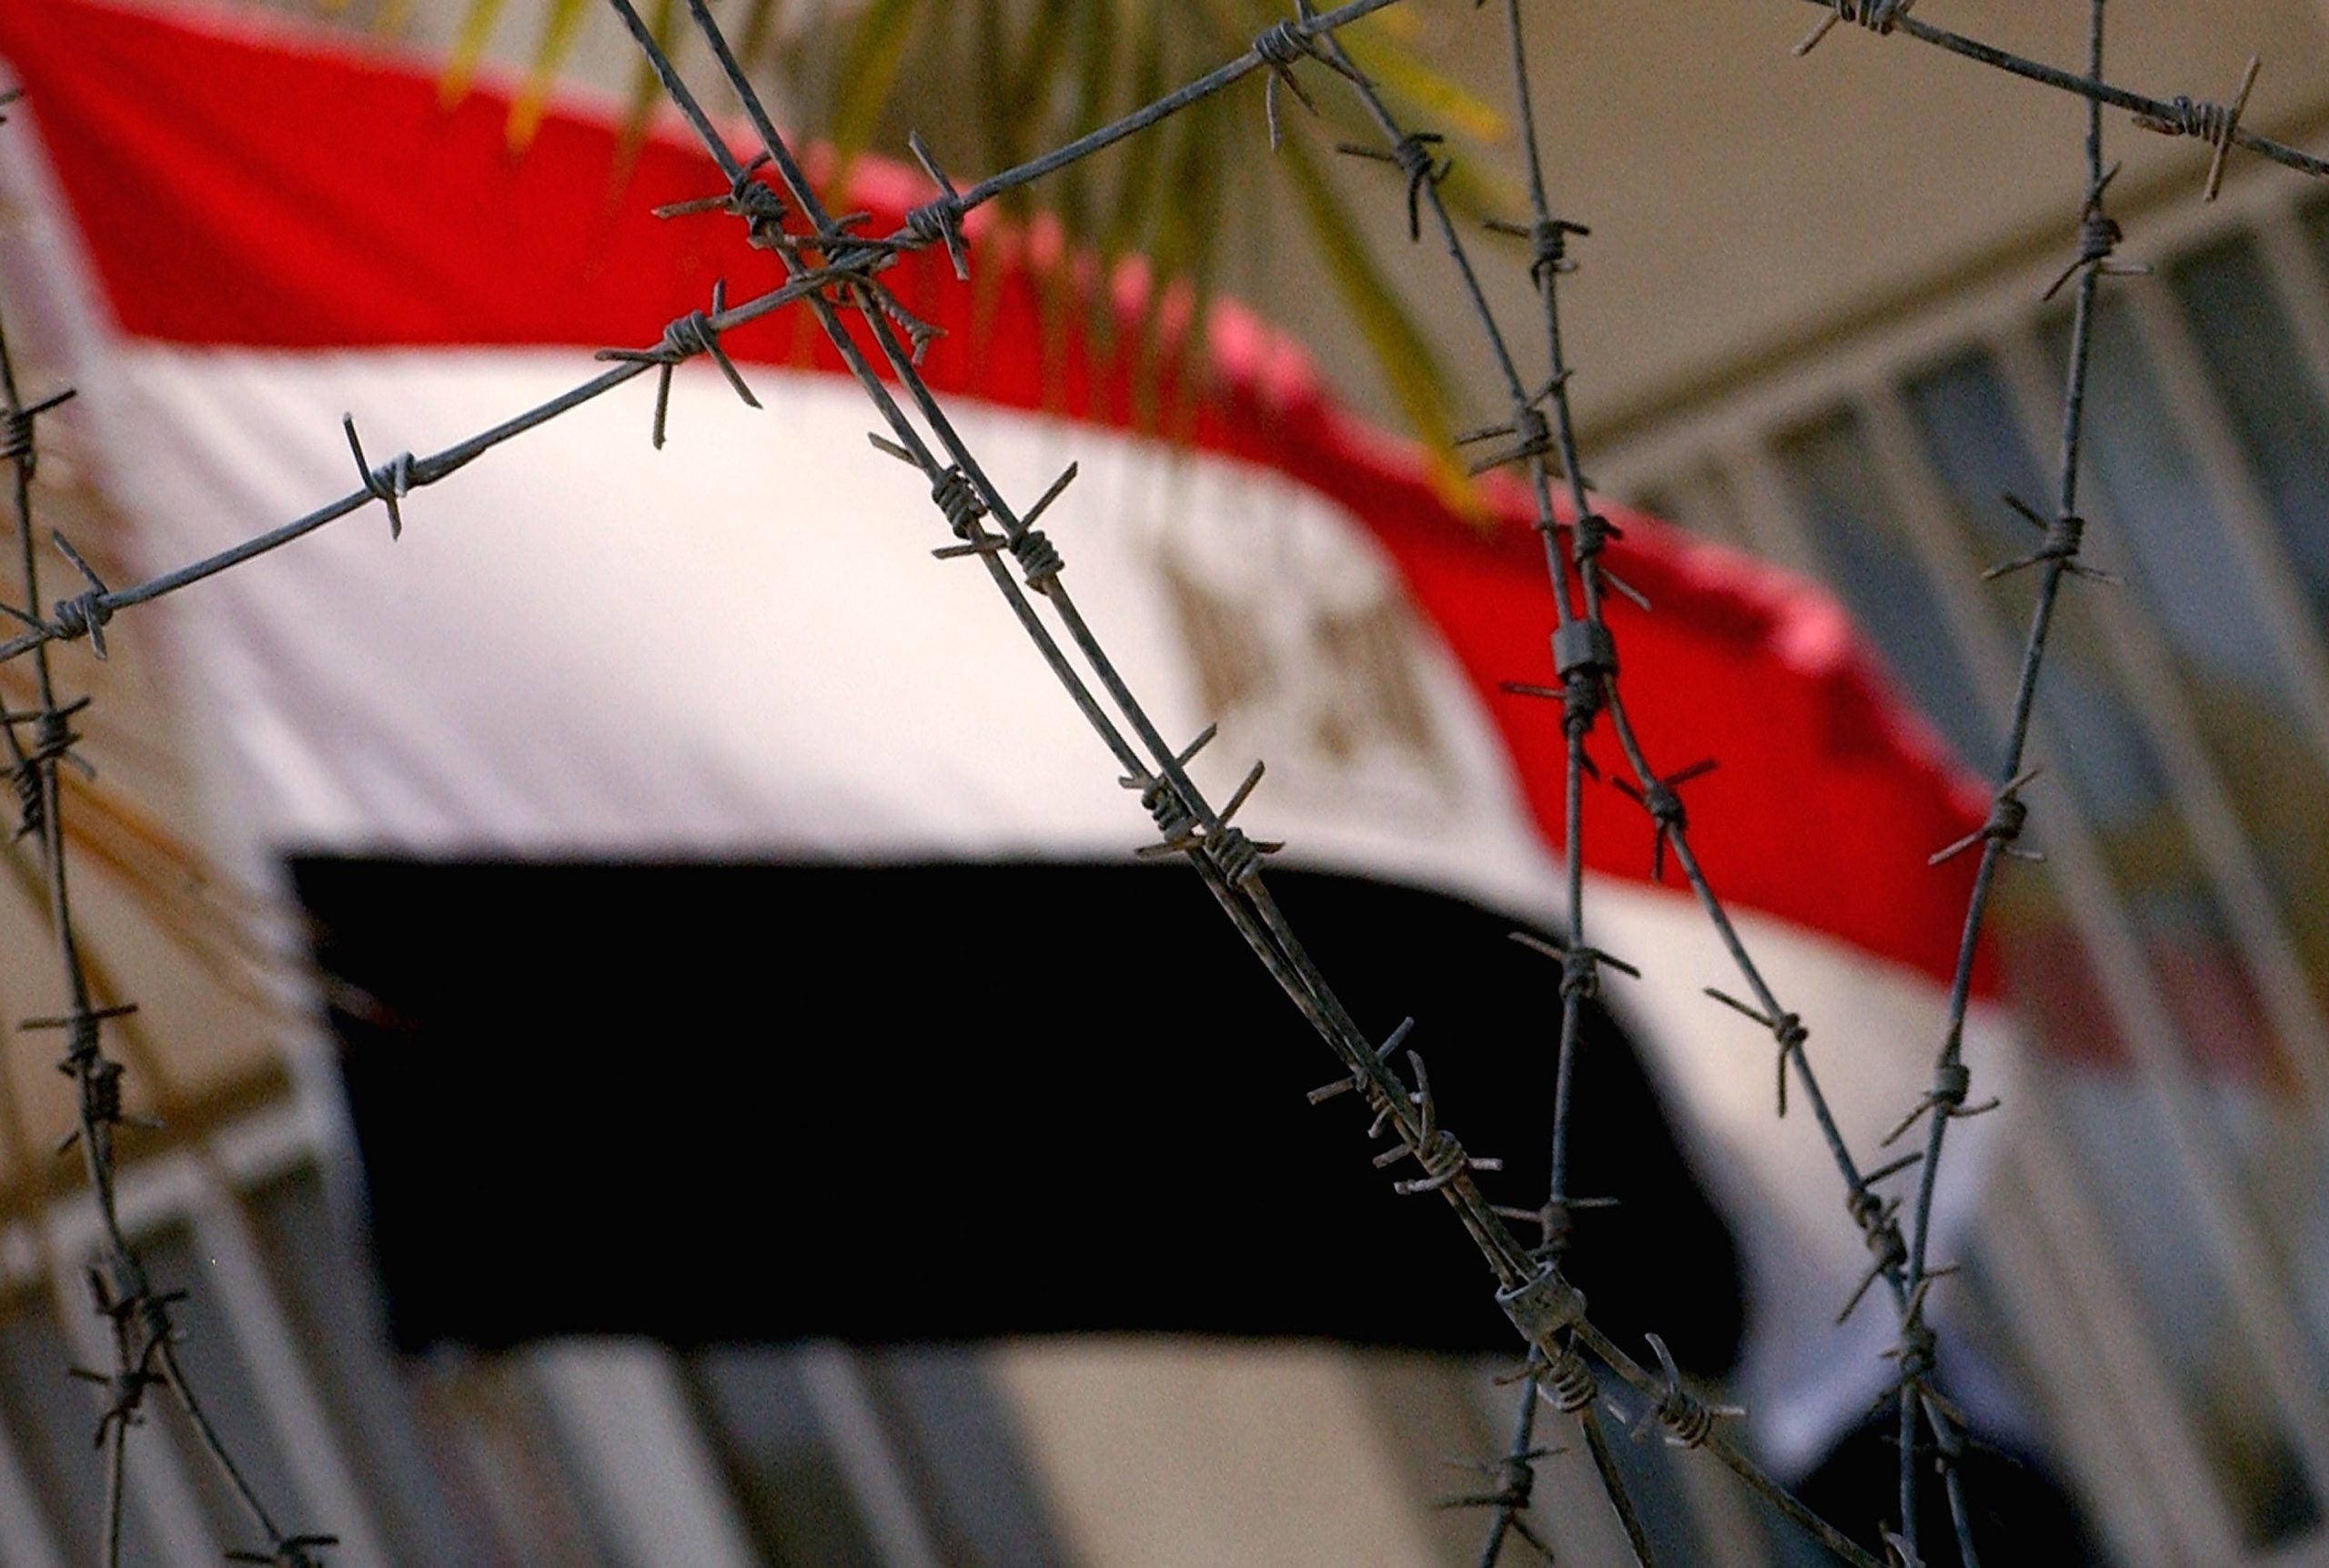 How Egypt's authoritarianism is harming its Covid response